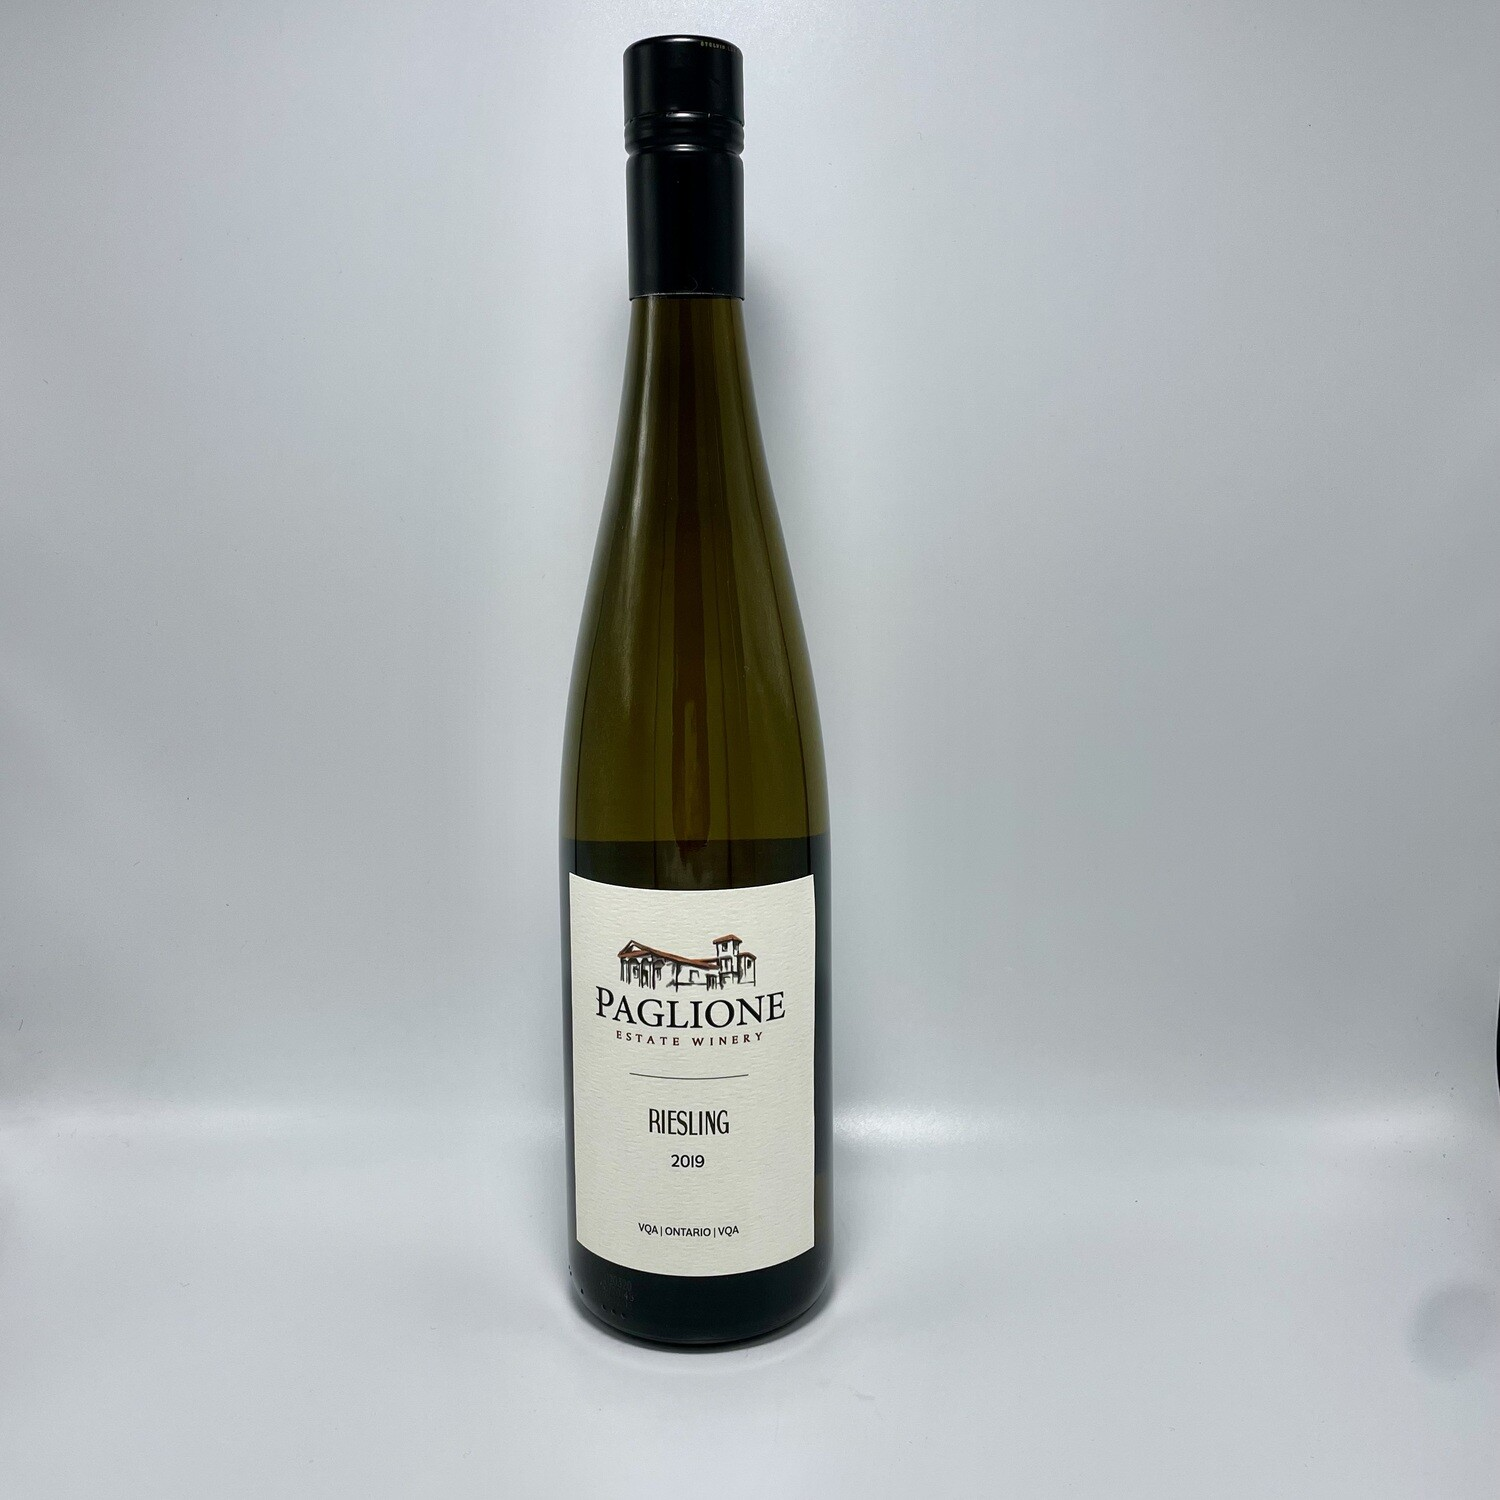 Paglione - Riesling 2019